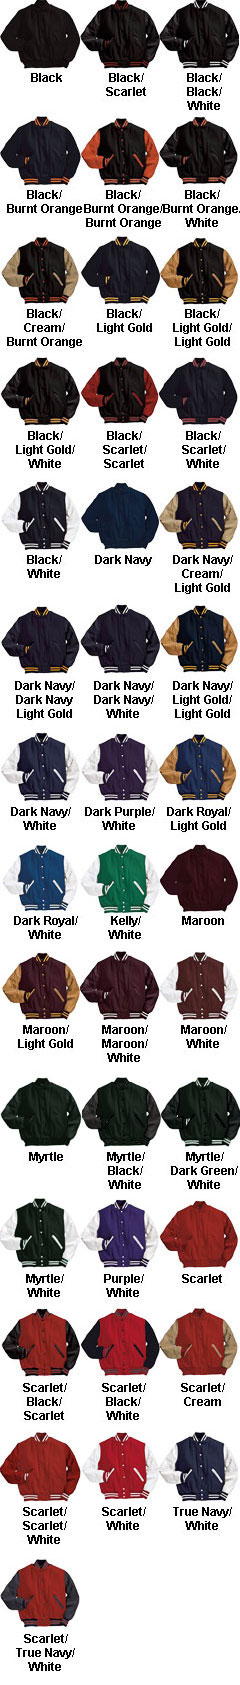 Varsity Jacket by Holloway - All Colors